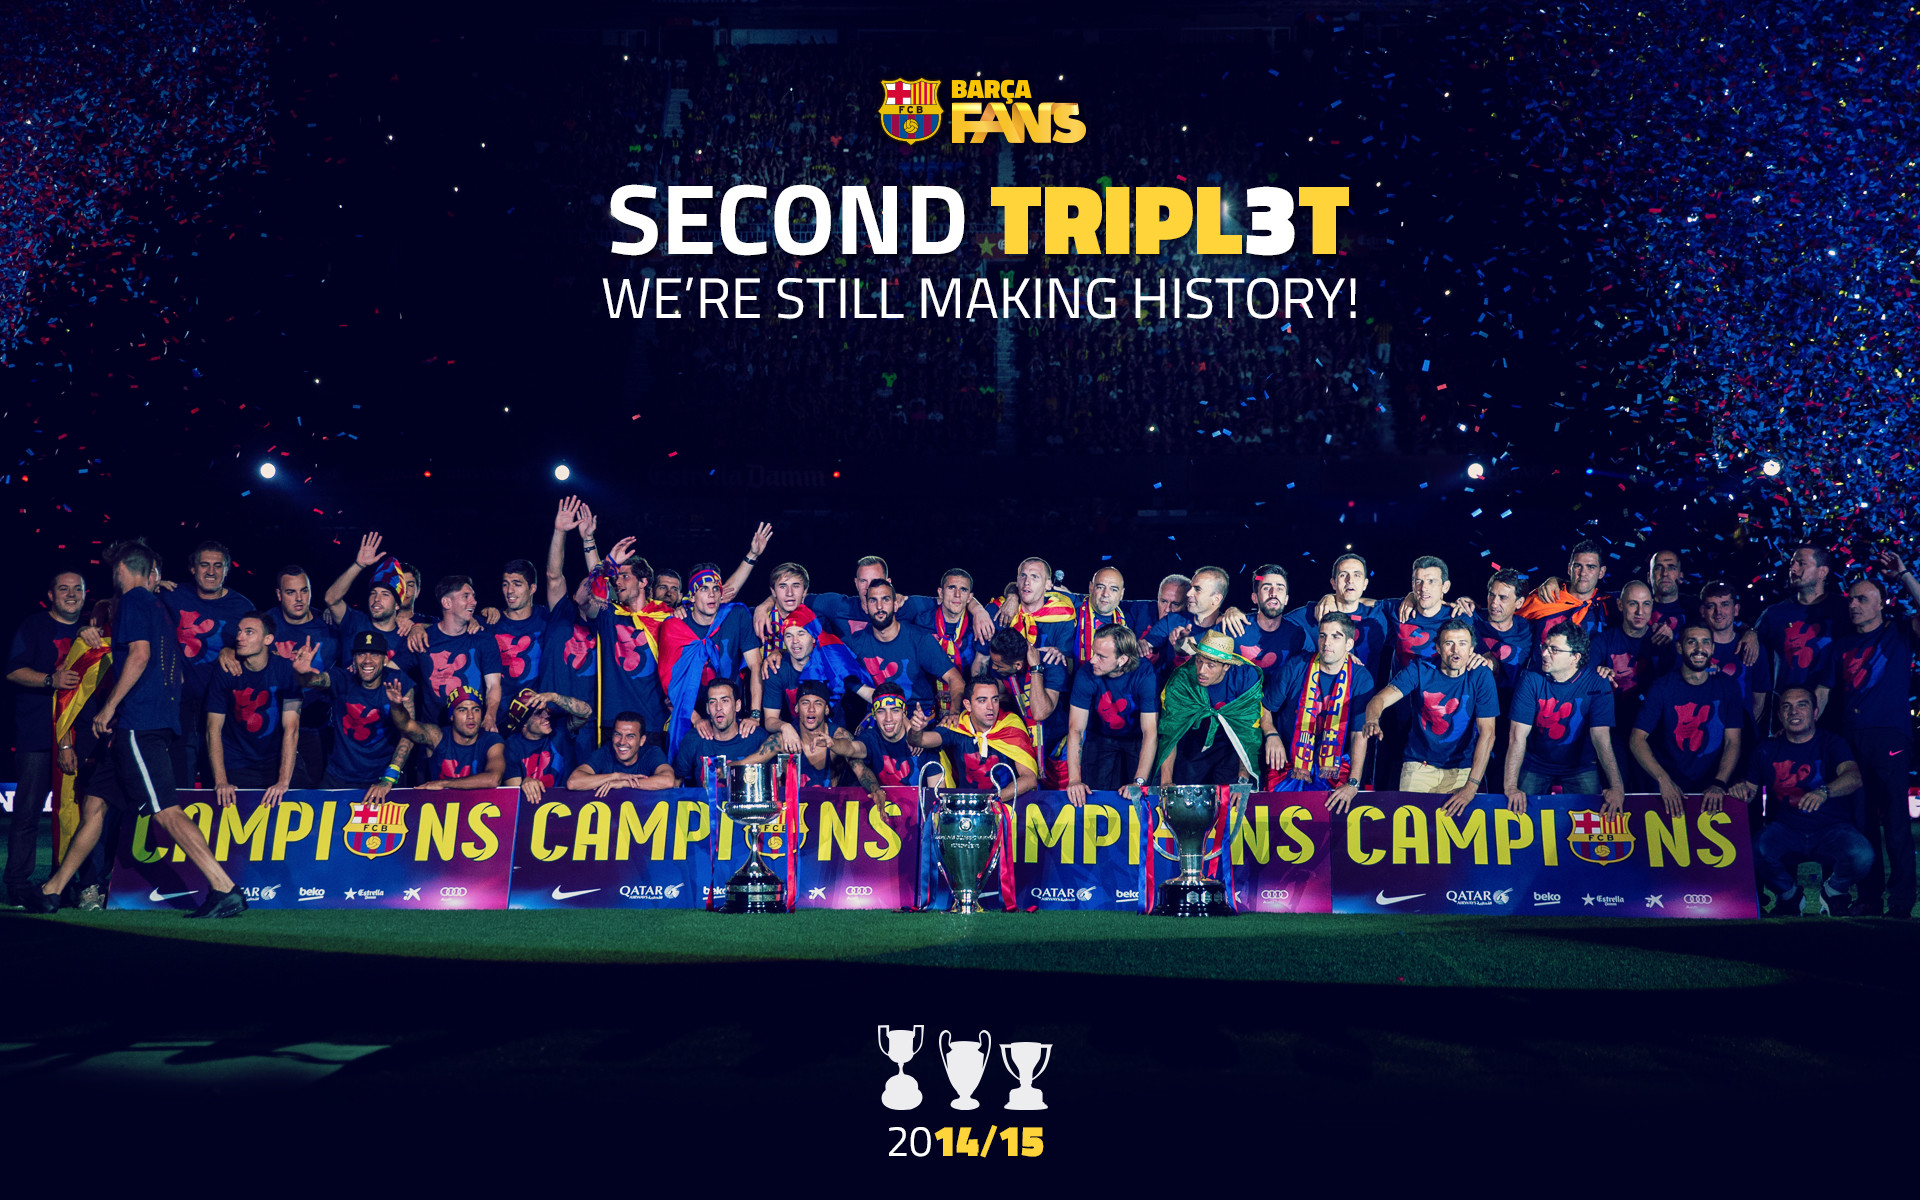 Second #TRIPL3T ; we're still making history! | My SOCCER obsession <333 |  Pinterest | FC Barcelona, Uefa champions league and Wallpaper